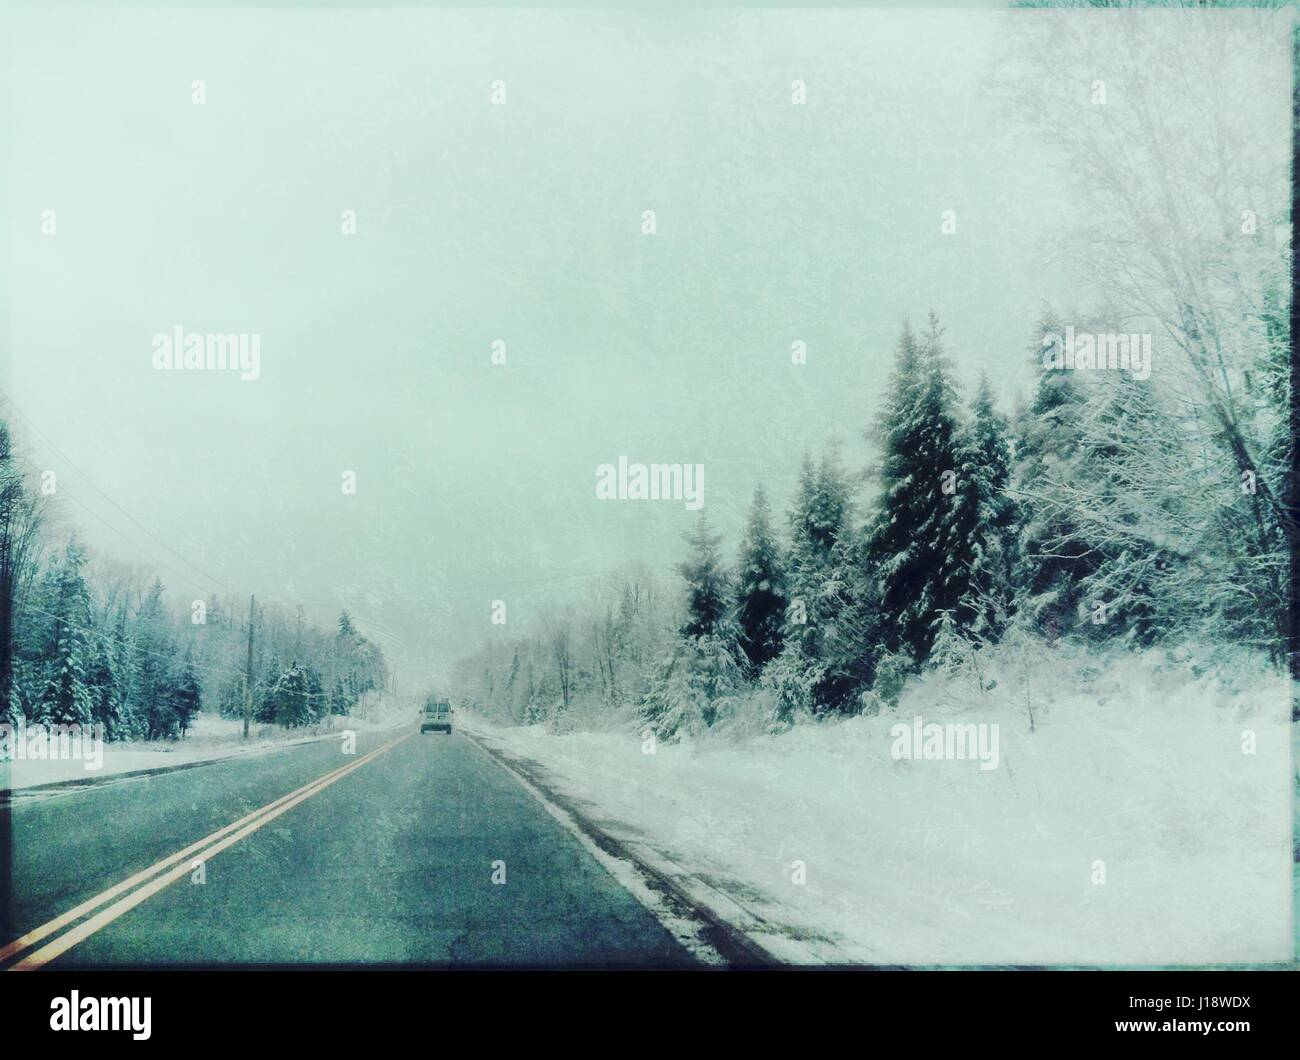 An edited version of a Canadian forest. - Stock Image